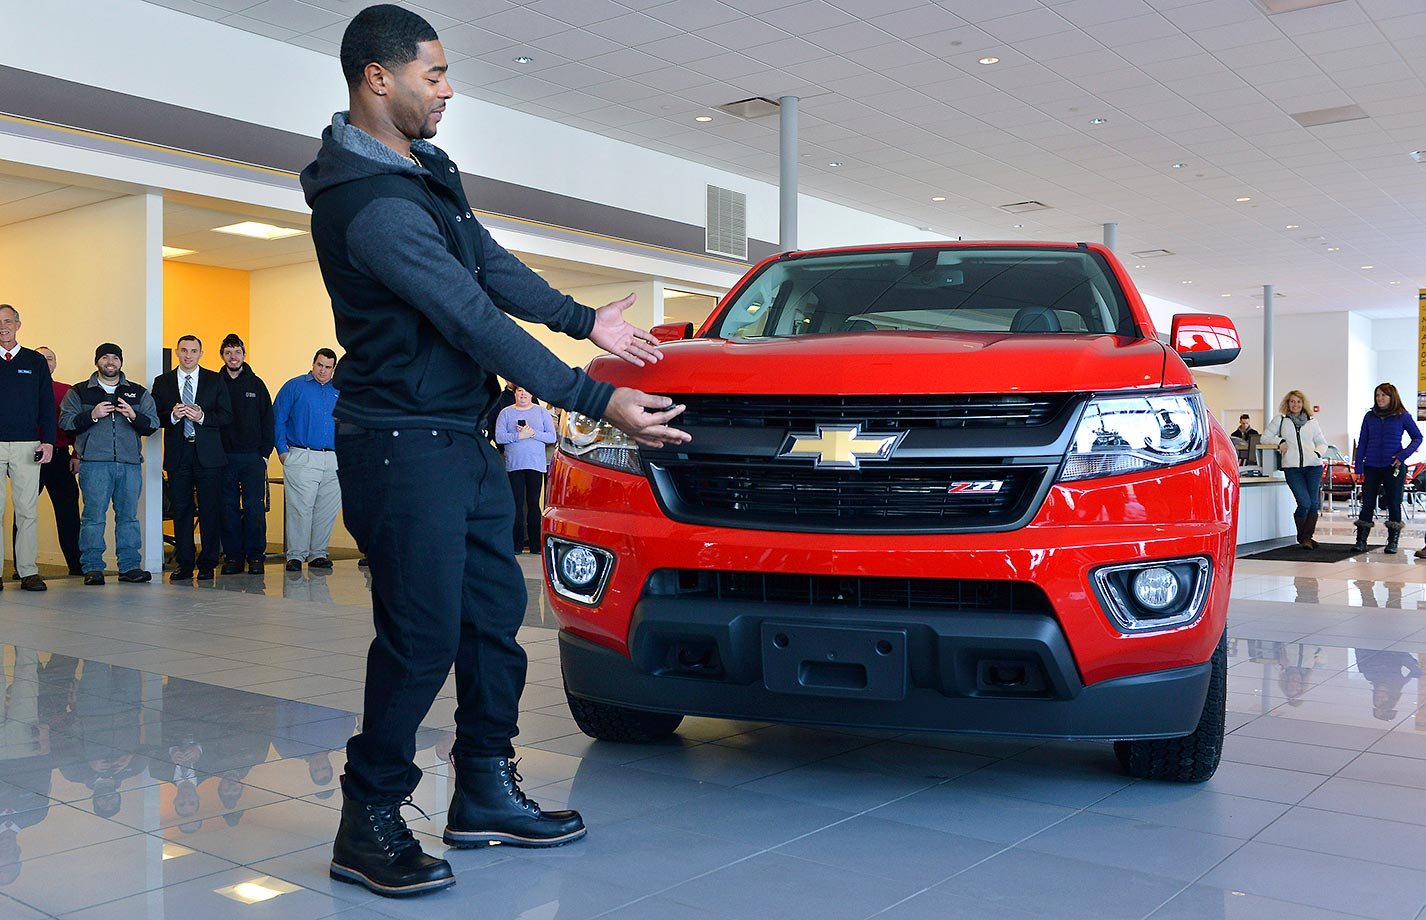 Malcolm Butler of the New England Patriots poses with his Chevrolet pickup.  The truck was intended to go to MVP Tom Brady, but Brady and the automaker determined that Butler should receive it in recognition for his game-saving interception that clinched the team's Super Bowl XLIX victory.